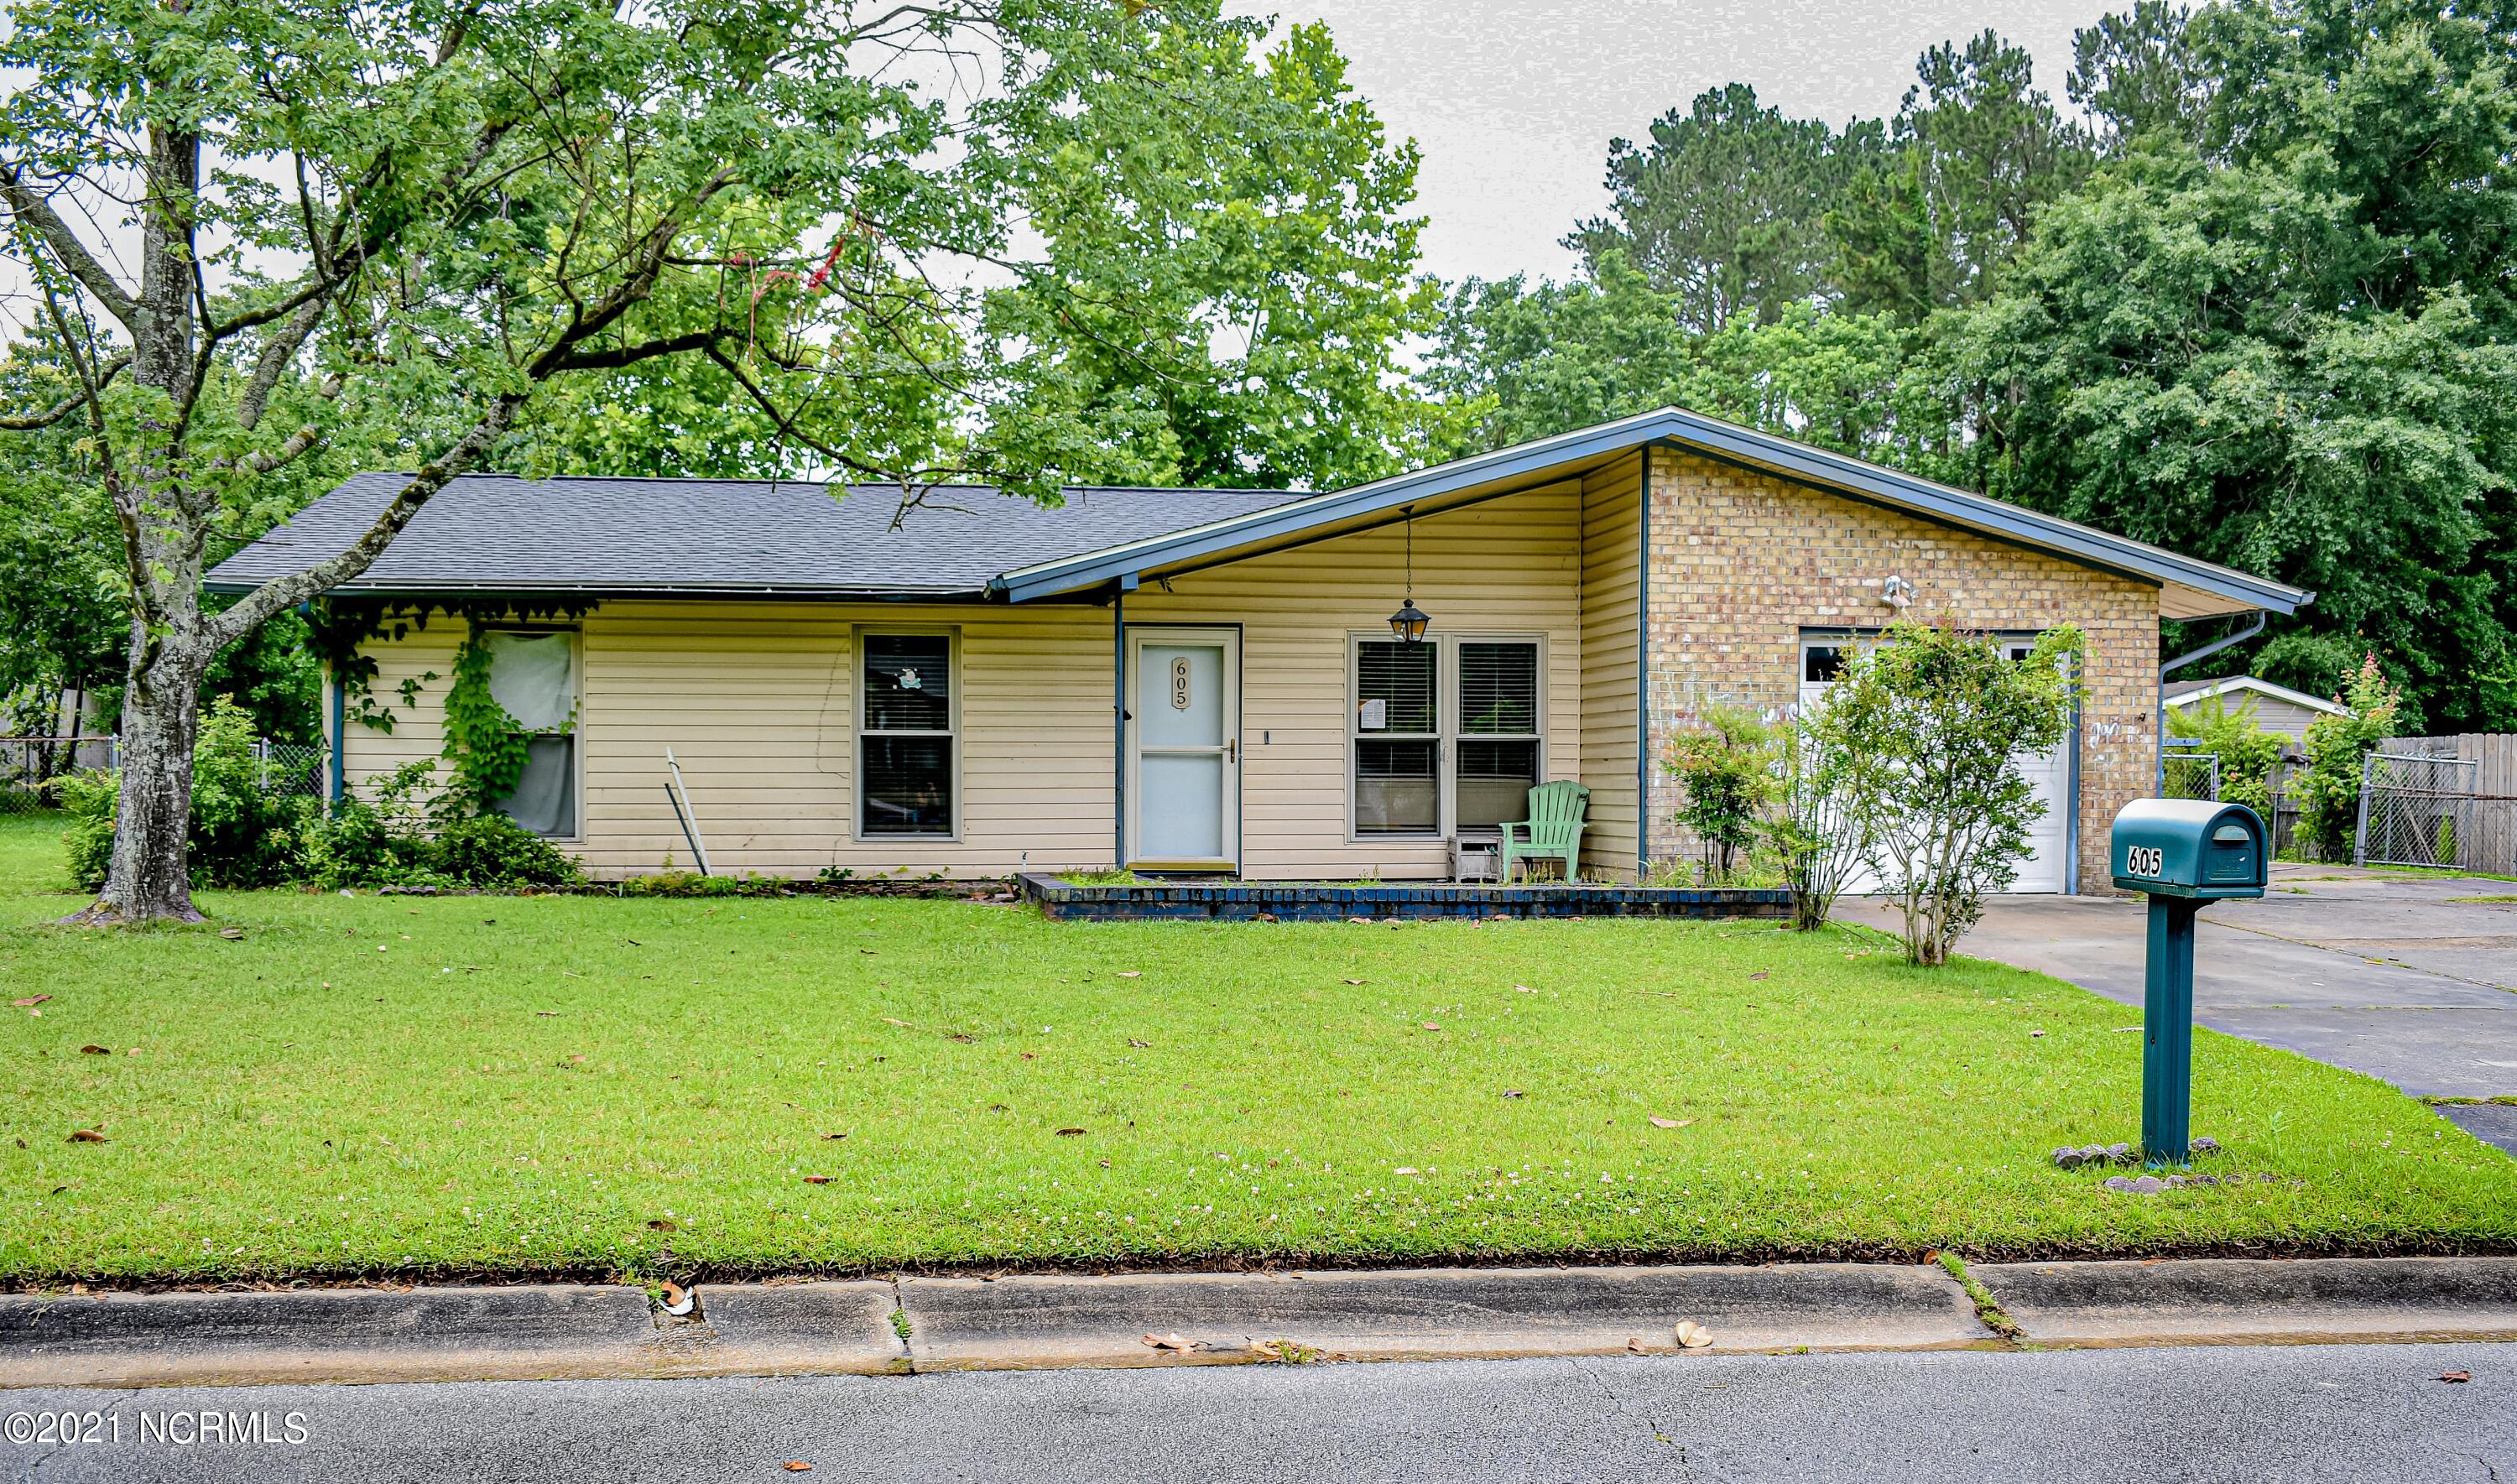 Previous buyer's financing fell through so we are back on the market. Great opportunity for first time homebuyers or investors. This ranch style home offers three bedrooms, two bathrooms, two living areas, kitchen and garage. Home has a large, fenced in back yard and the shed conveys with the property.Home currently has a tenant in place.